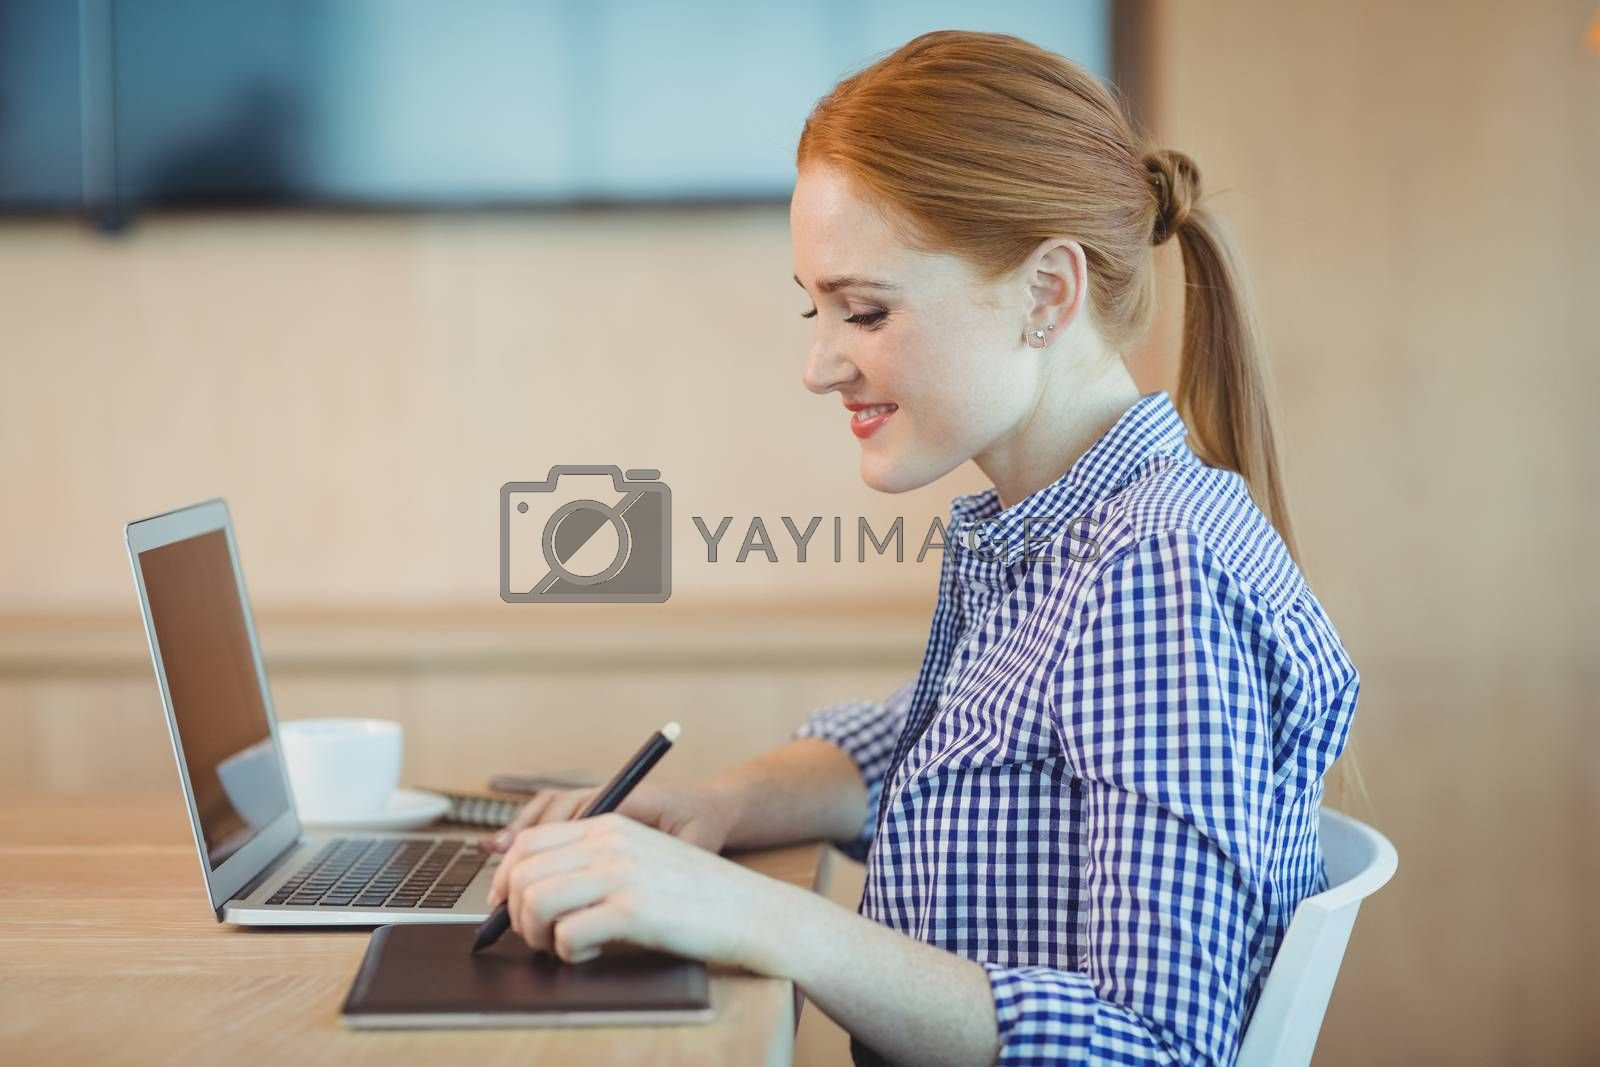 Female graphic designer using graphics tablet in office